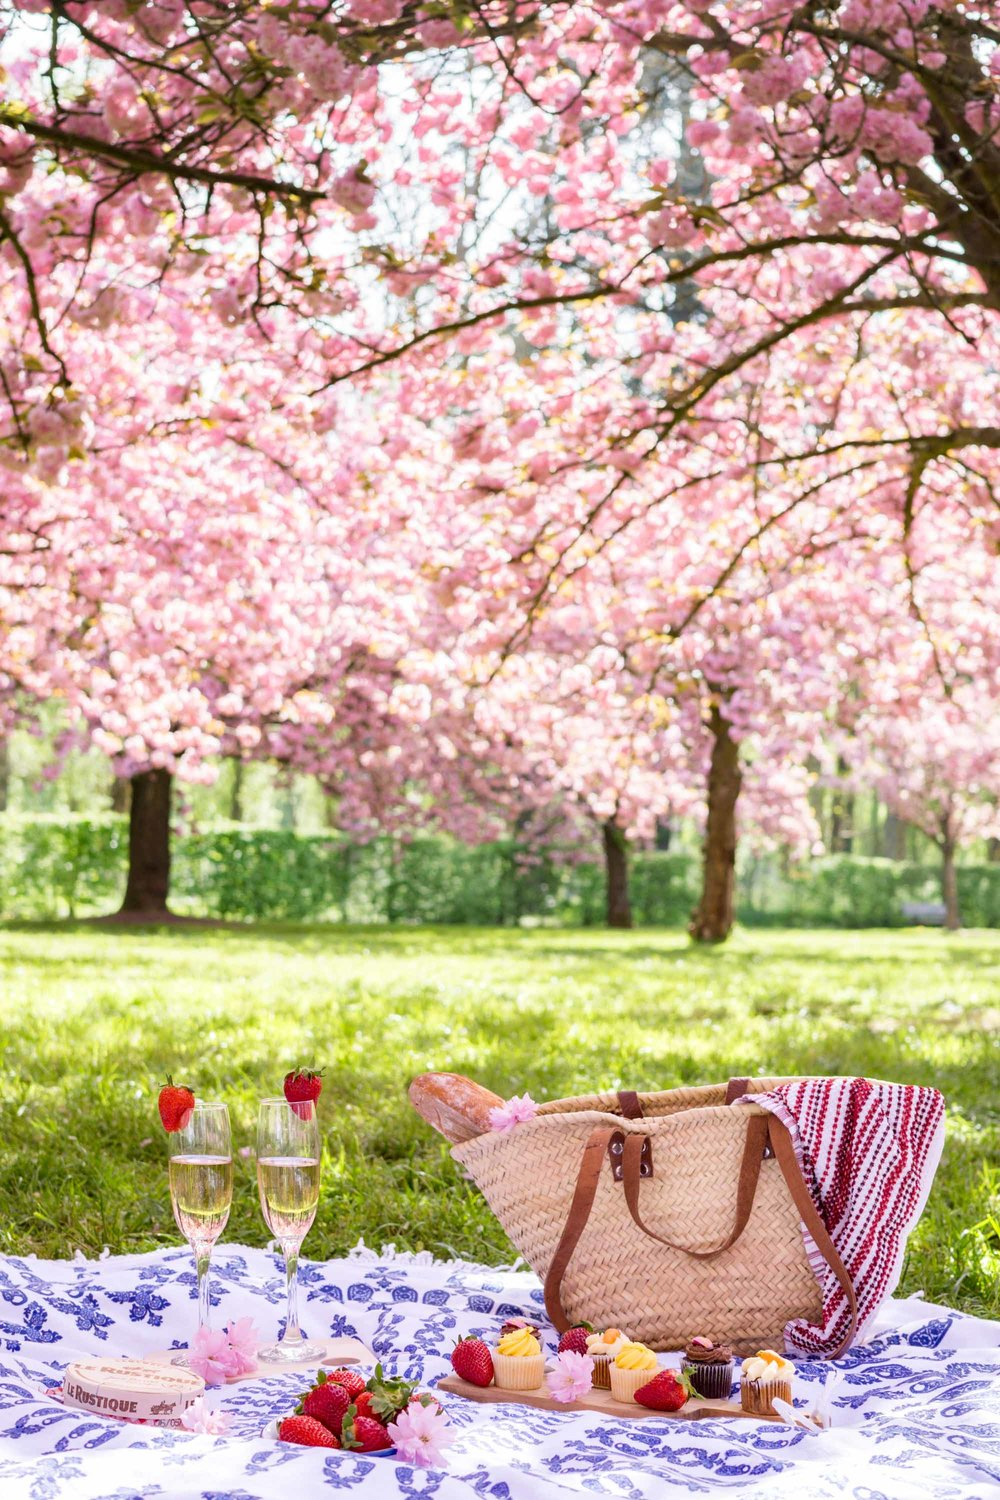 Parc de Sceaux | Paris Day Trip | Experience The Pink Orchard, a cherry blossom oasis within the Parc de Sceaux, with this floral filled travel guide.